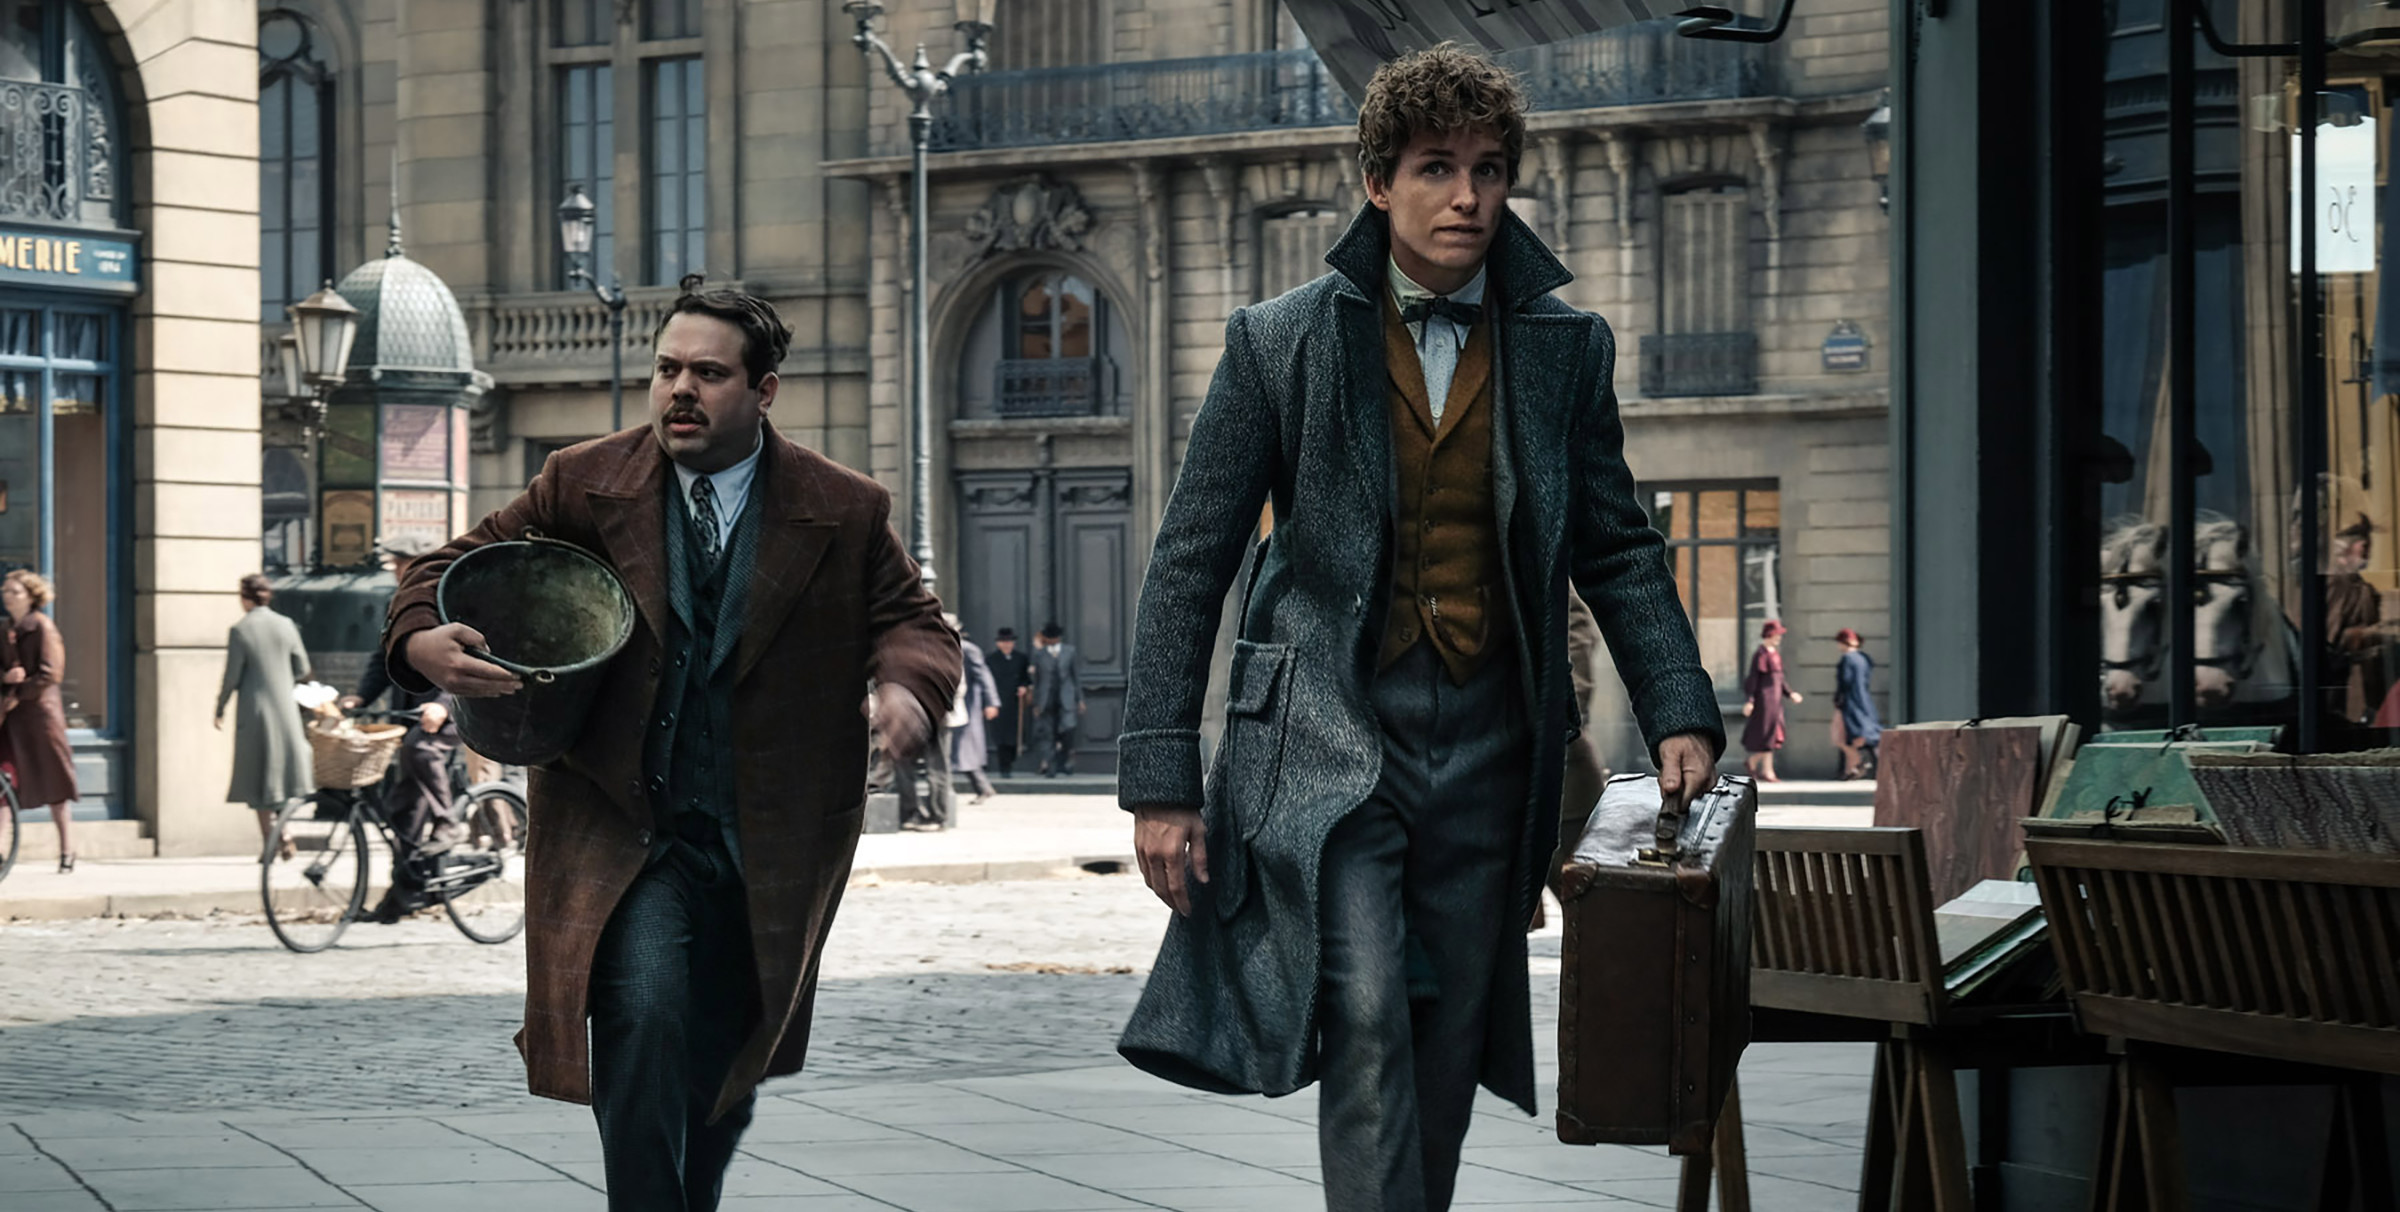 fantastic-beasts-movies-settings-e1516125732411